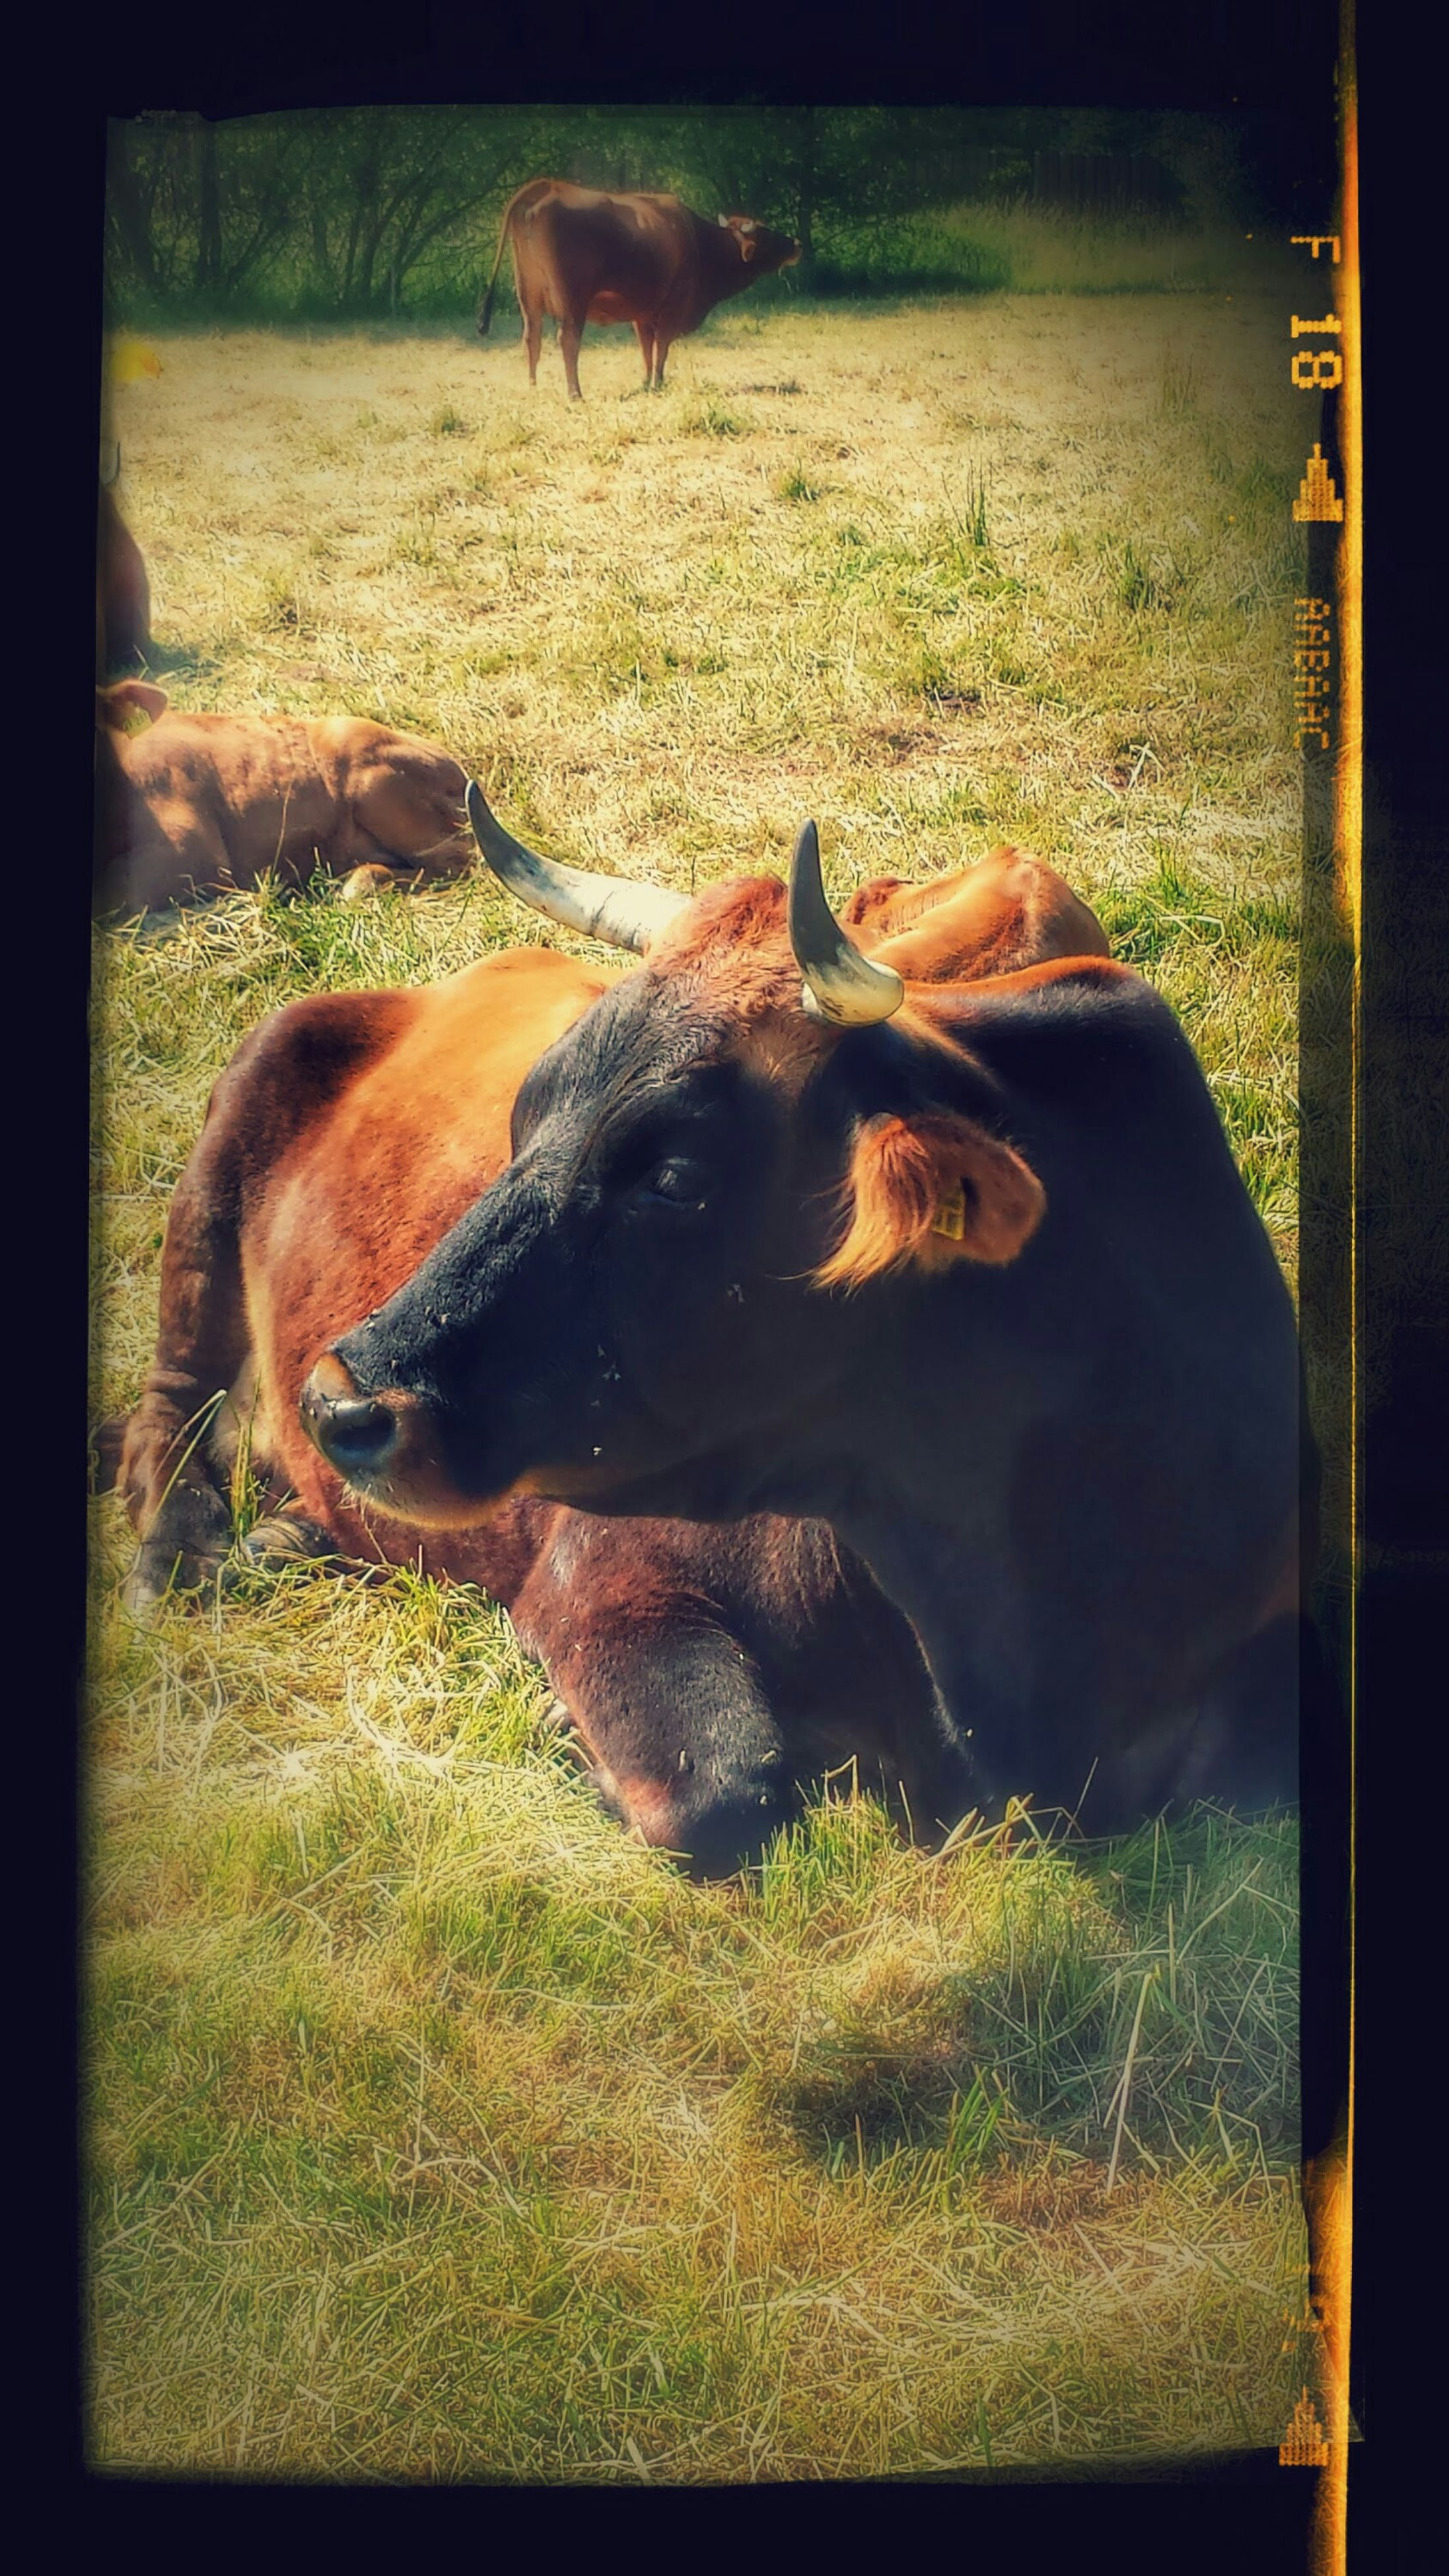 domestic animals, animal themes, mammal, grass, livestock, one animal, field, horse, cow, grassy, transfer print, domestic cattle, pets, herbivorous, auto post production filter, zoology, no people, sunlight, two animals, grazing